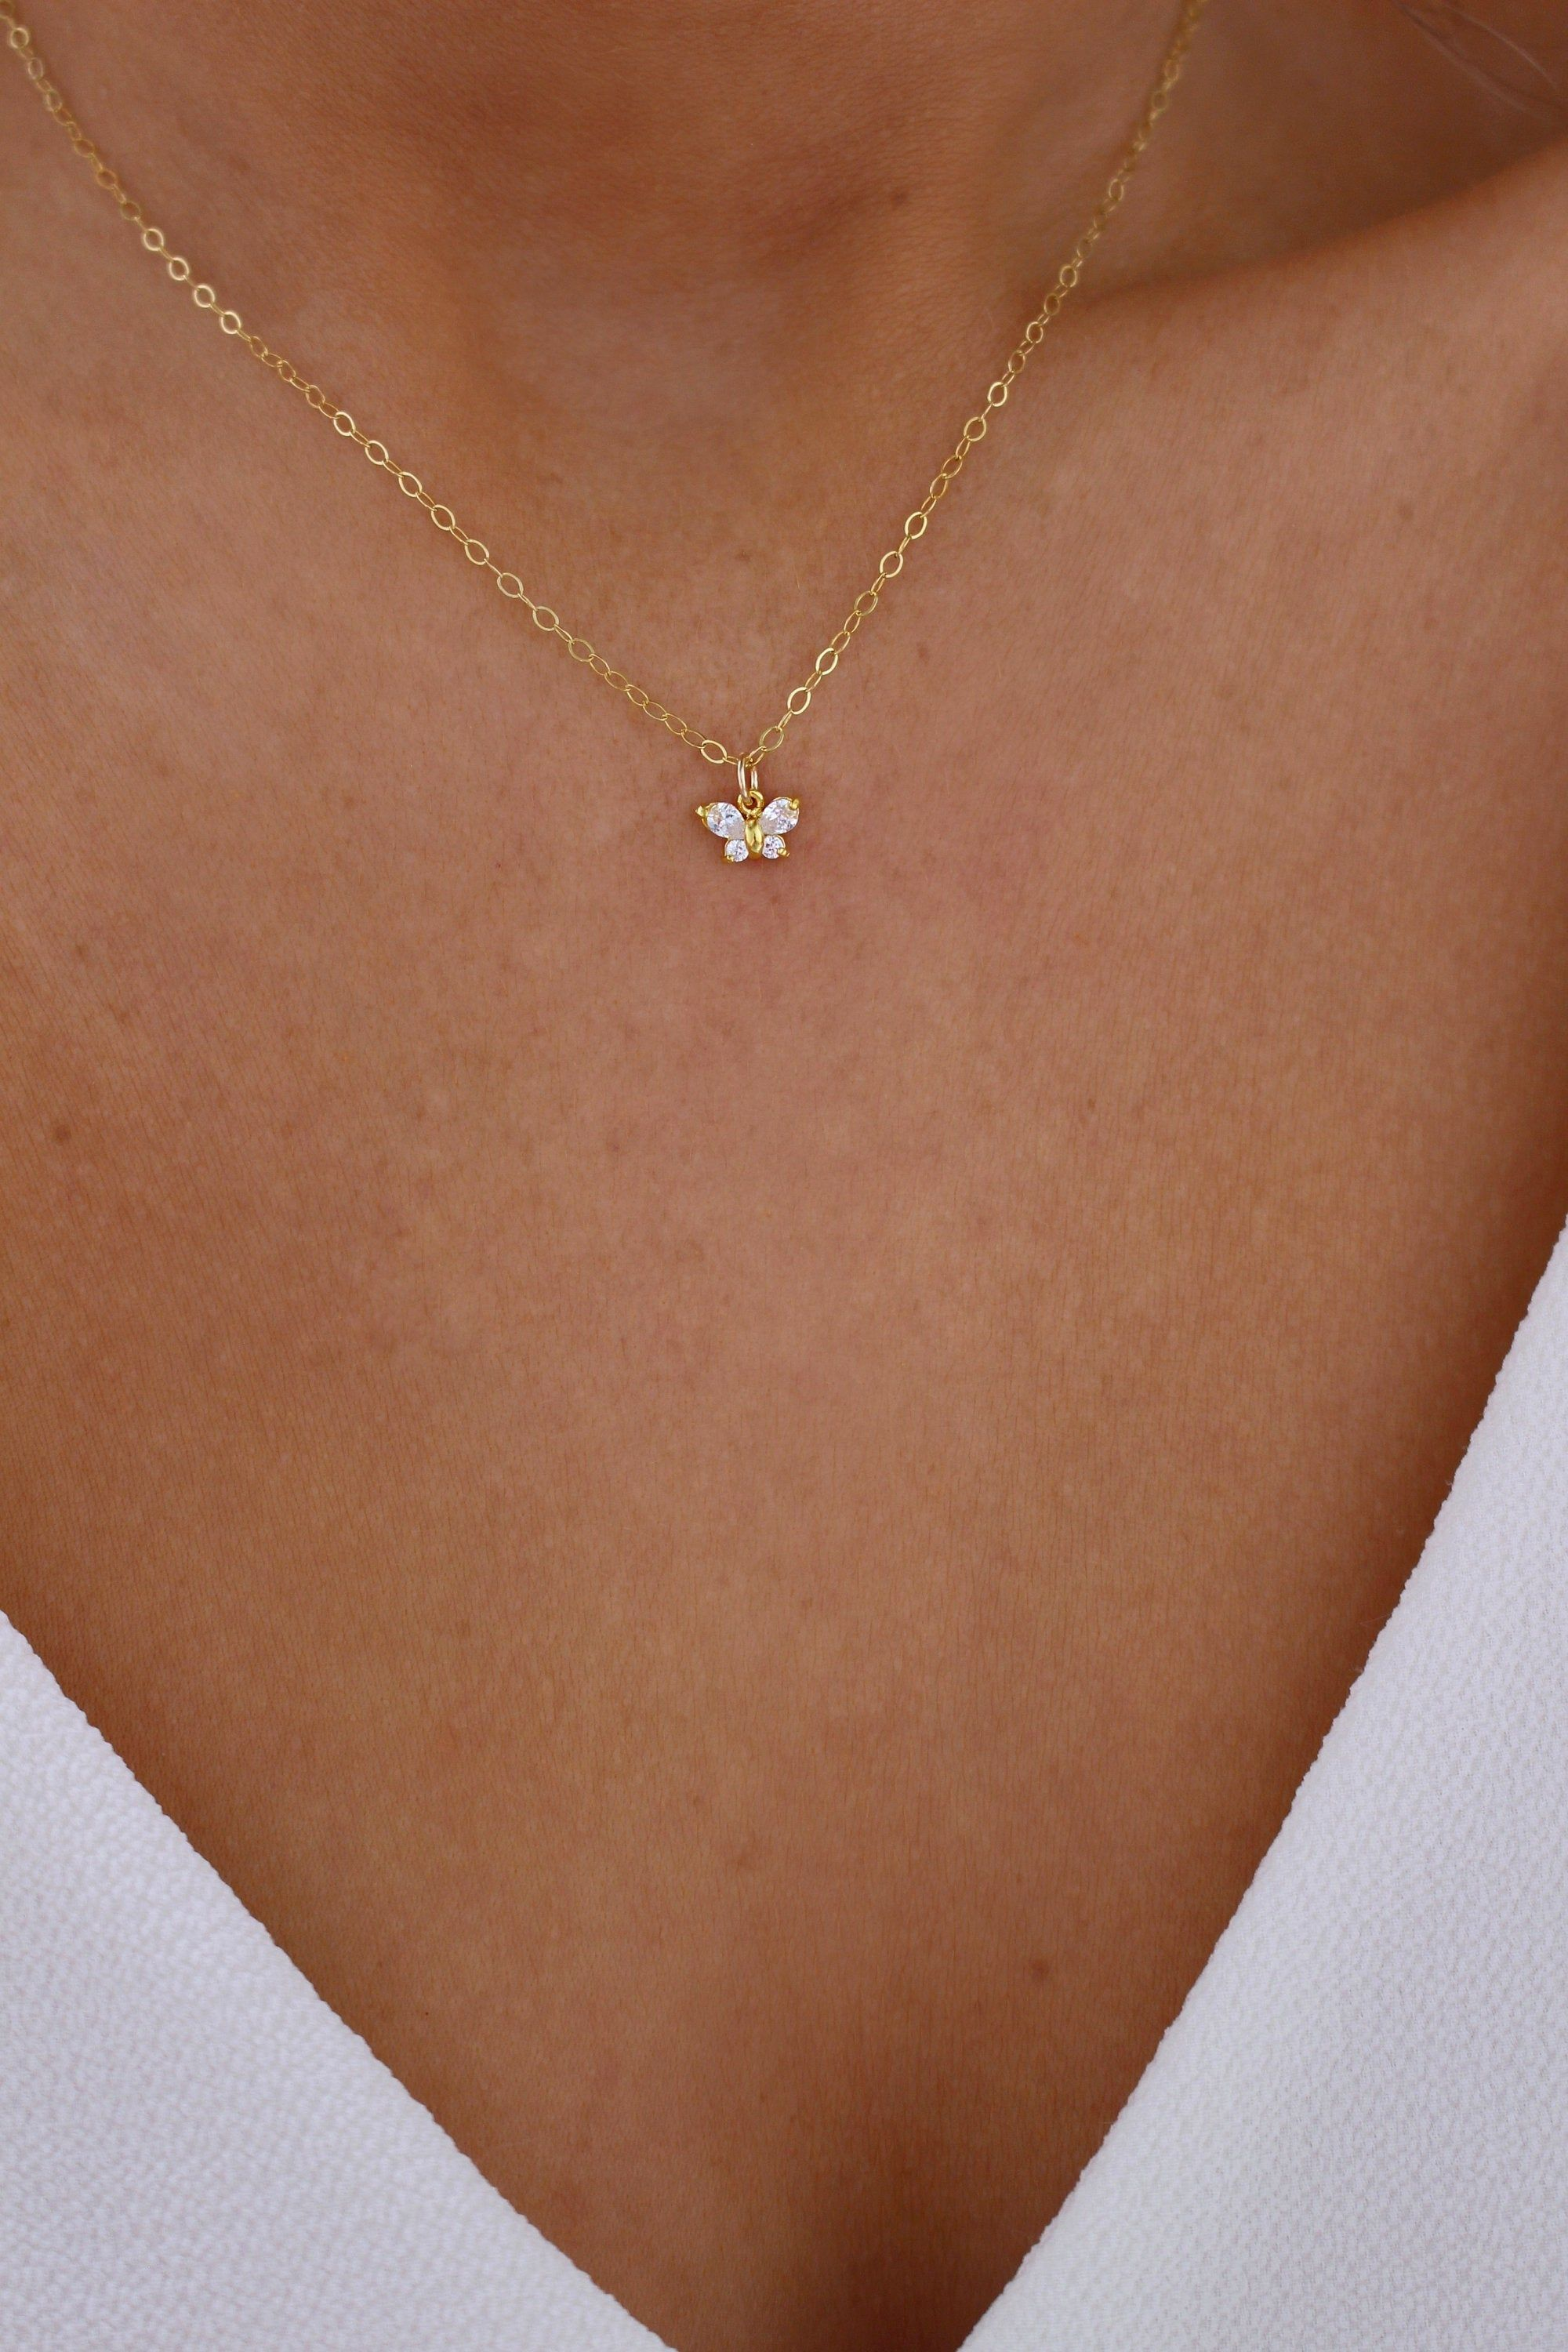 Butterfly Necklace dainty gold chain simple butterfly necklace